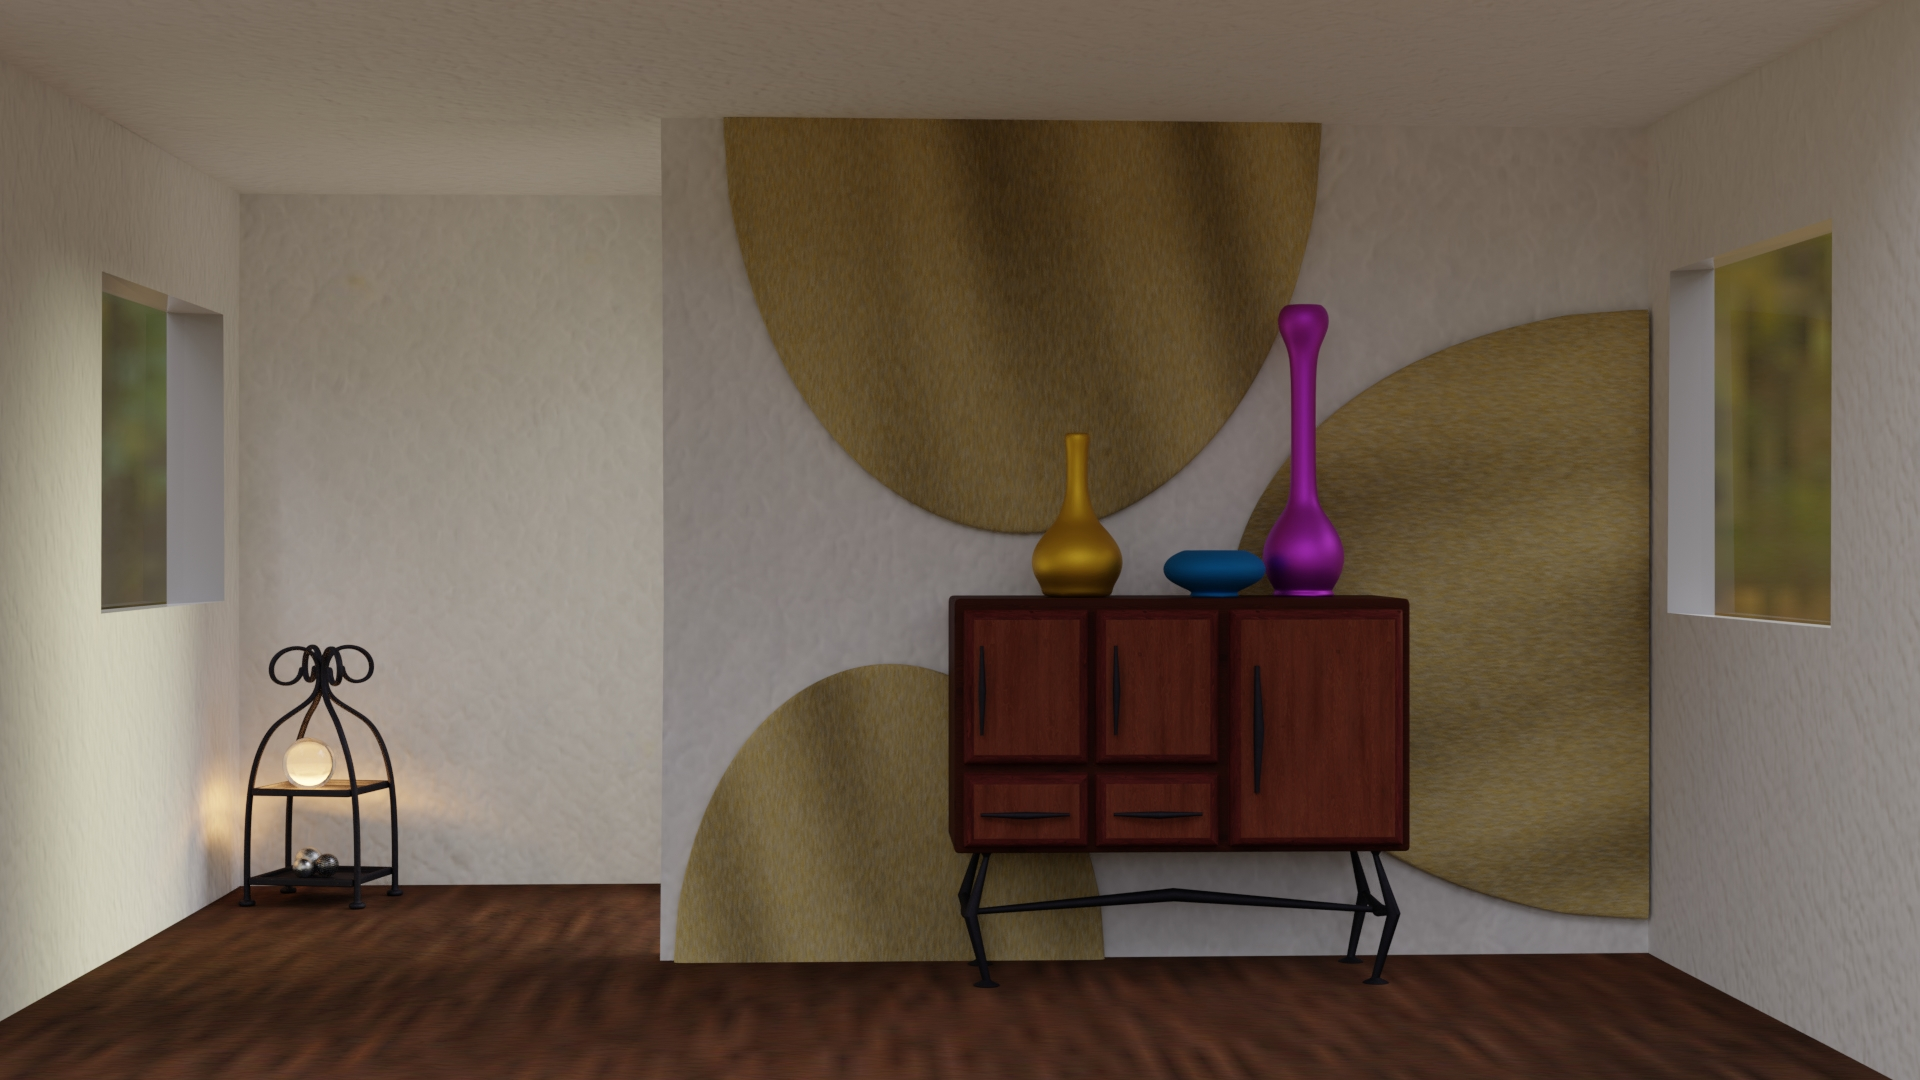 Interior Scene 4 with wooden floor and more deco